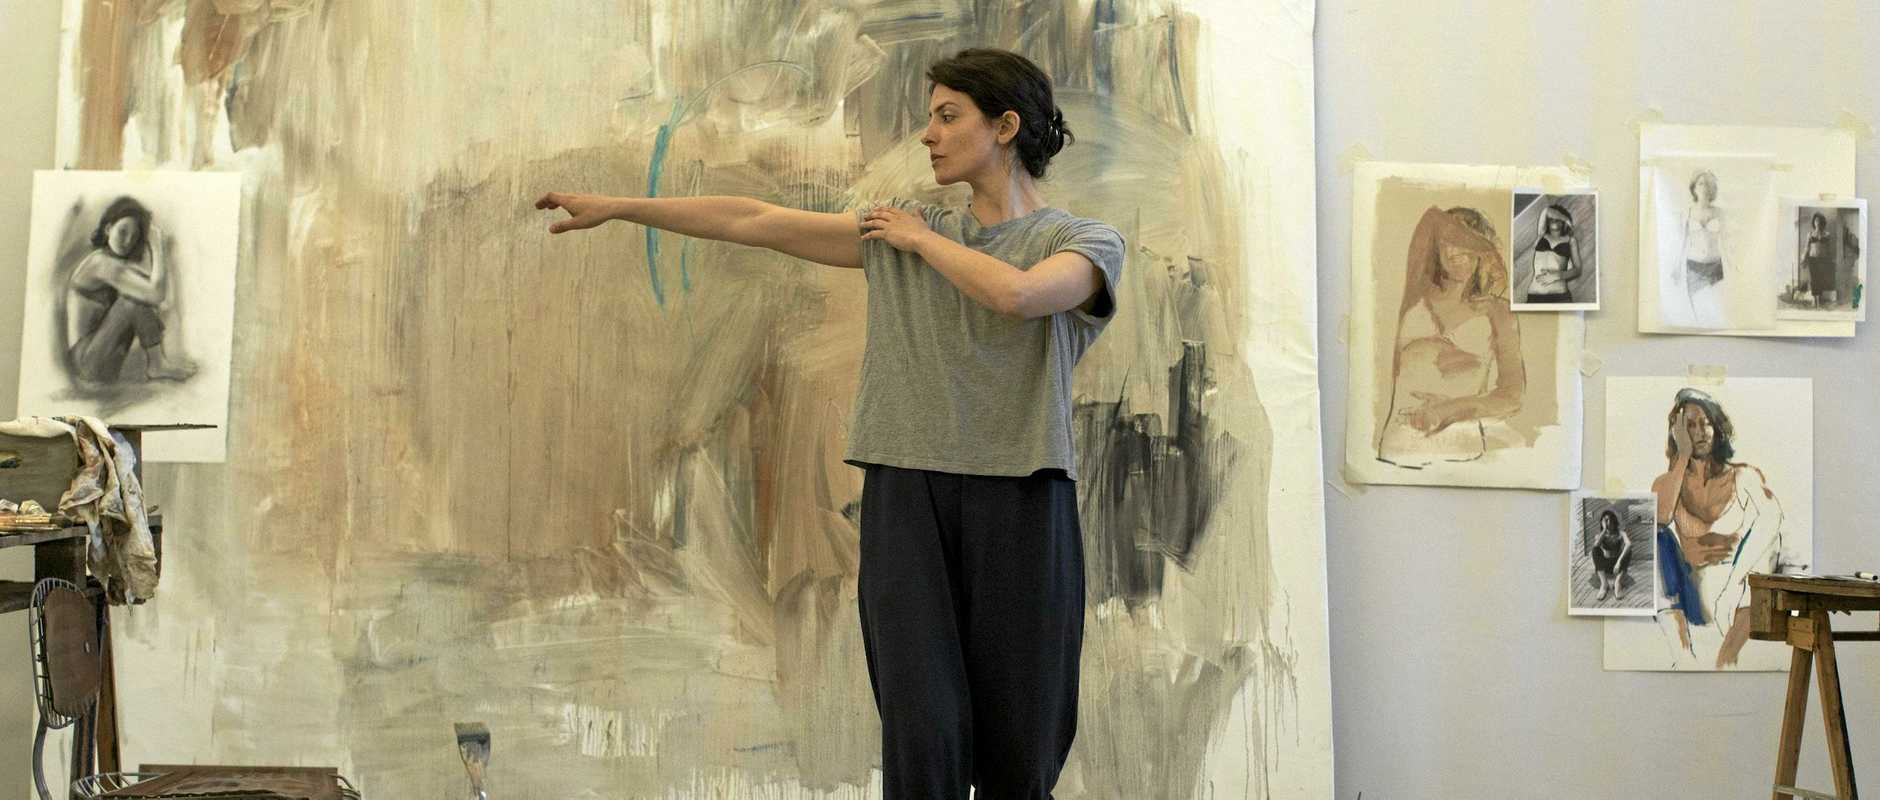 Petra is an absorbing portrait of a young painter who travels to the Catalan countryside after the death of her mother.